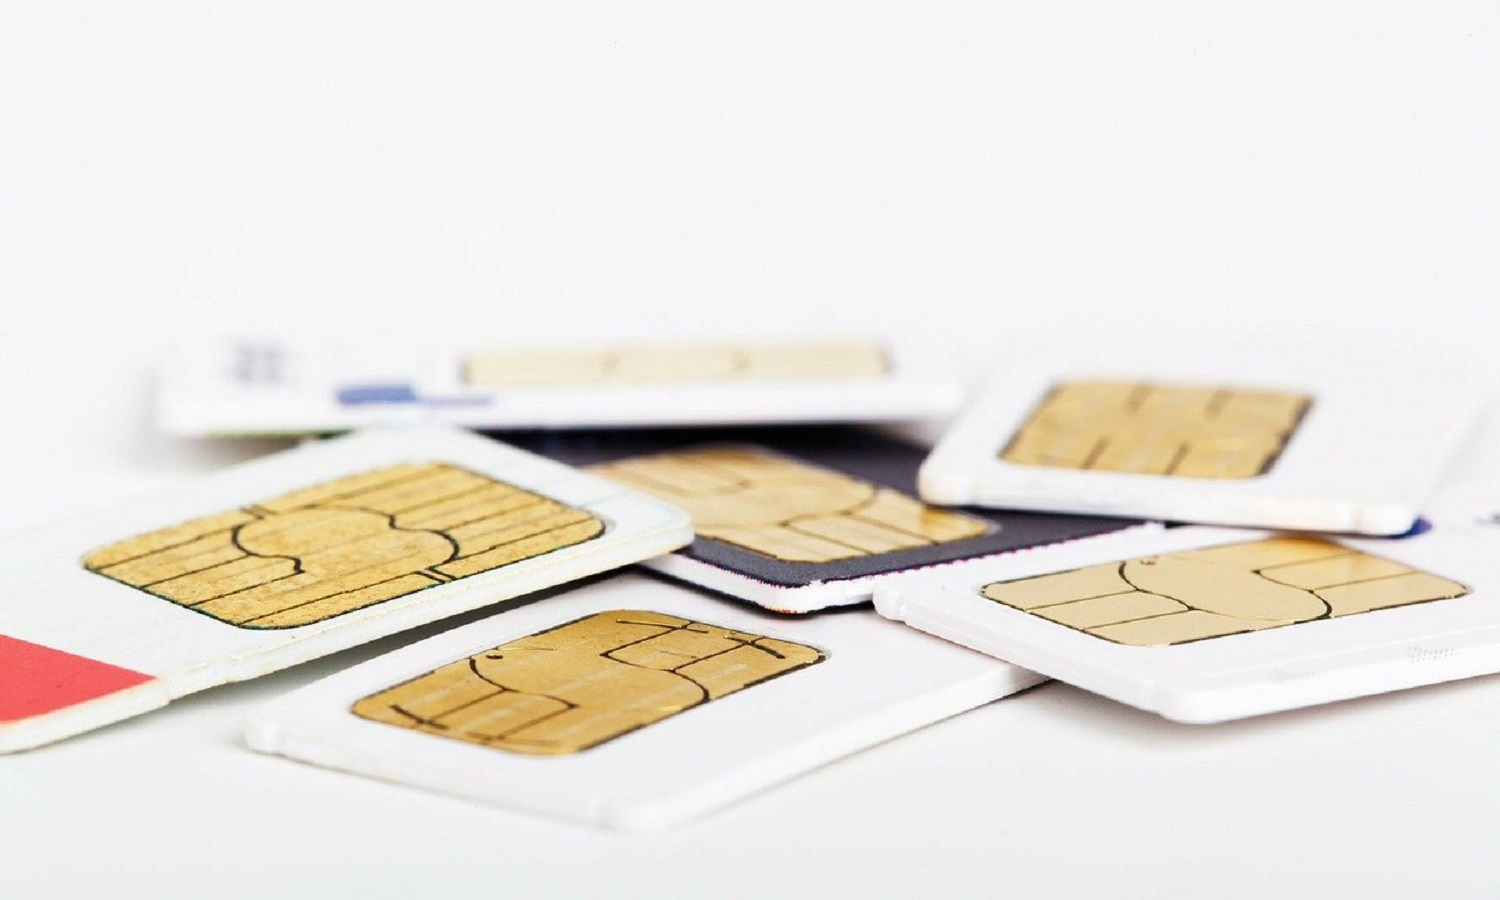 How To Activate Giffgaff SIM?